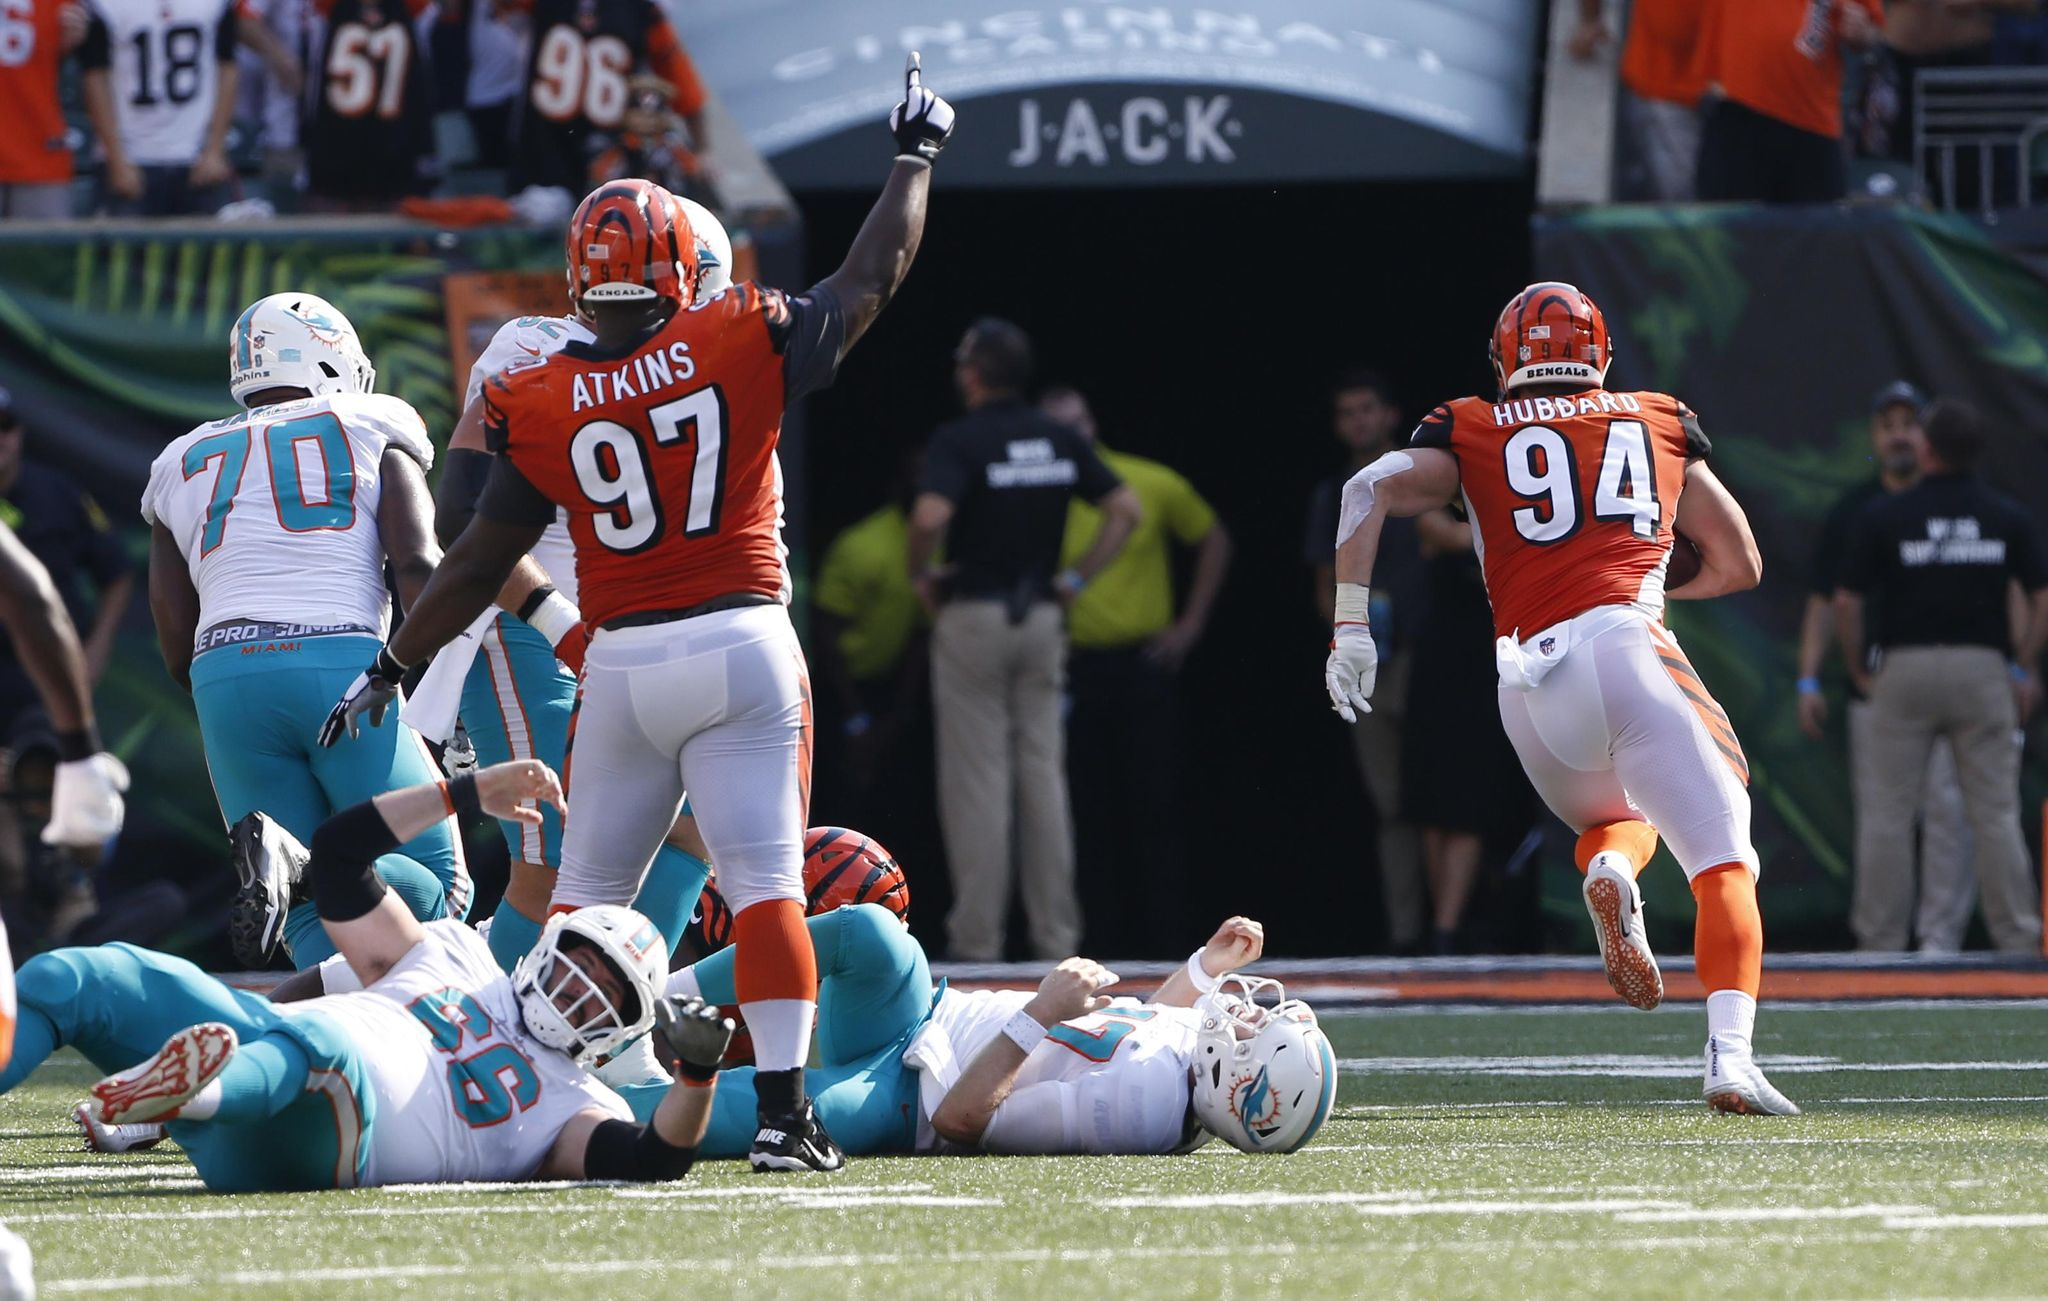 Dolphins_bengals_football_70851_s2048x1301